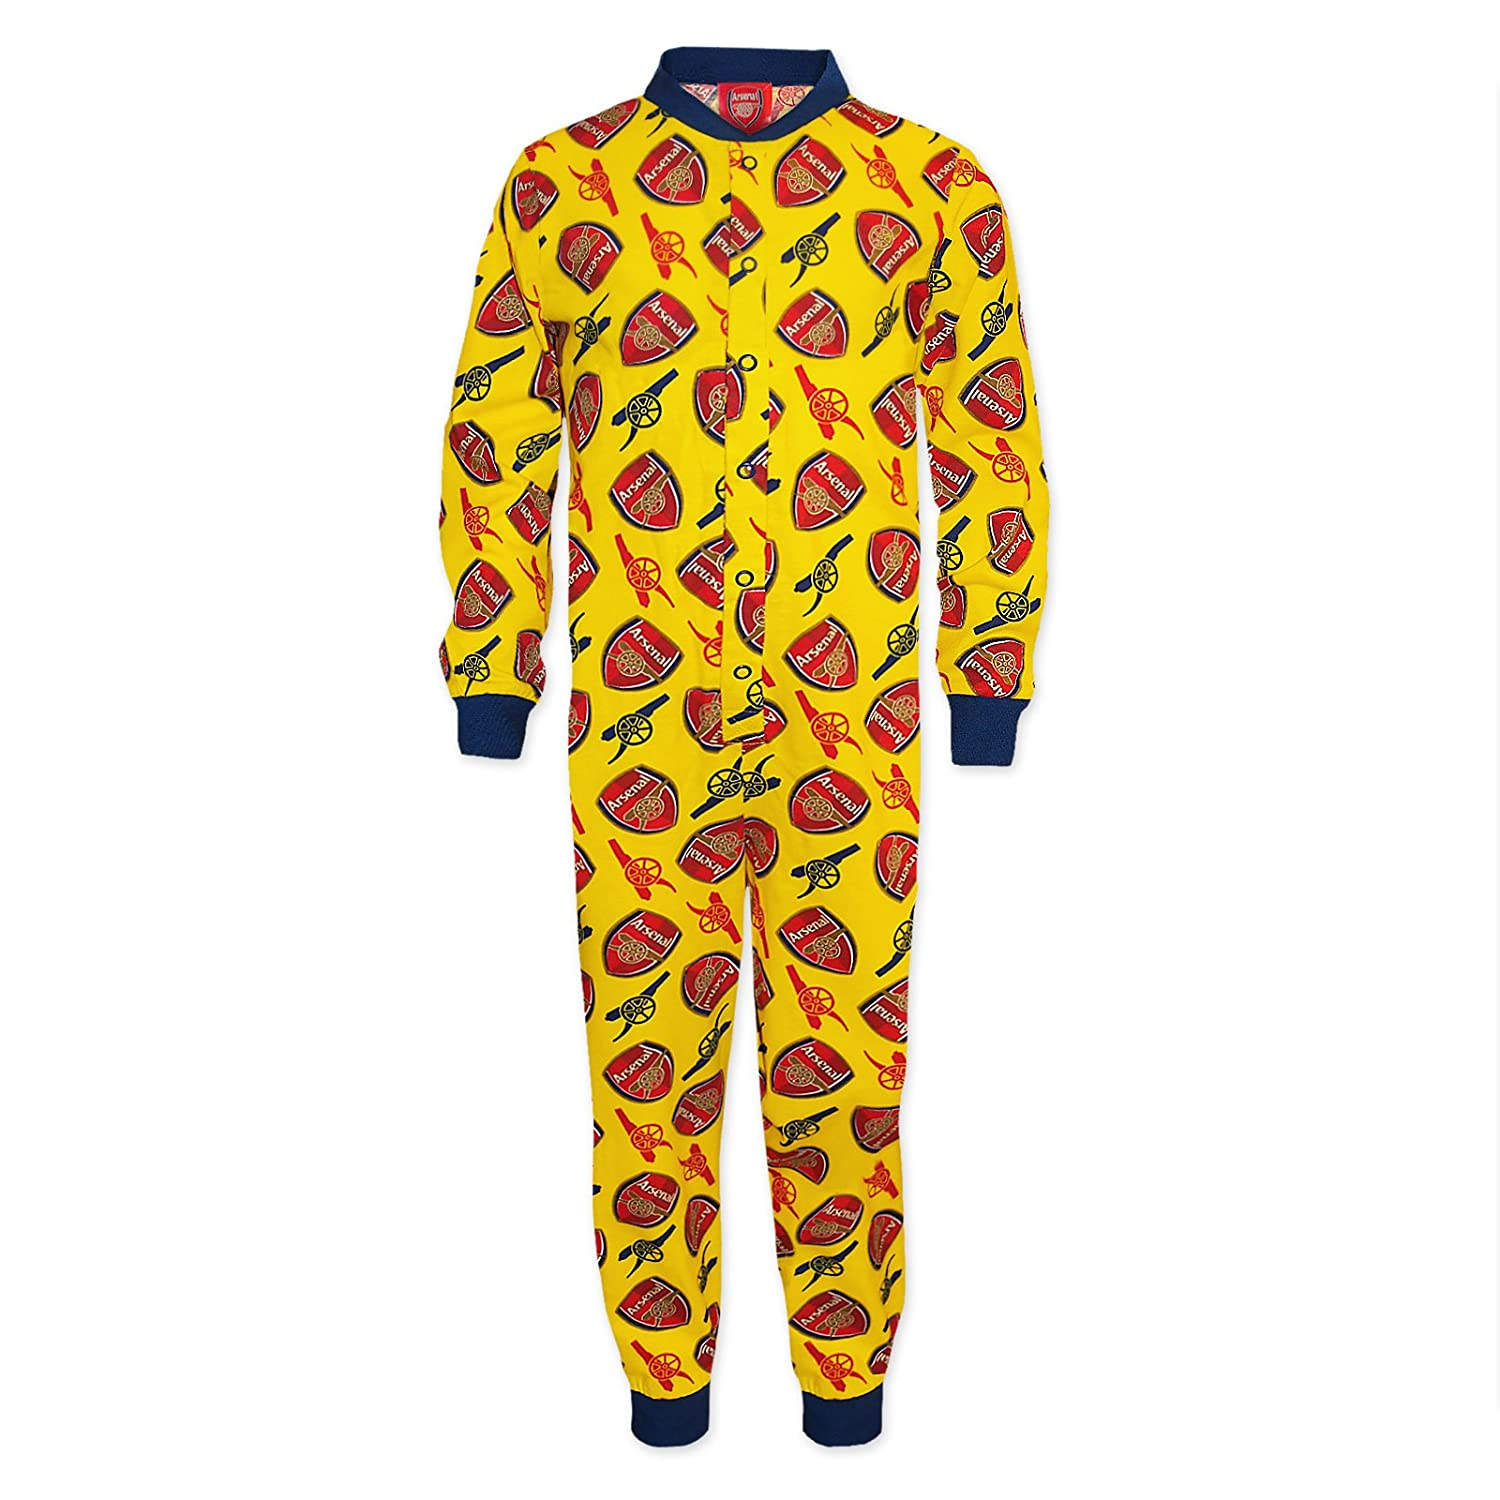 Arsenal FC Official Football Gift Boys Kids Pyjama All-in-One